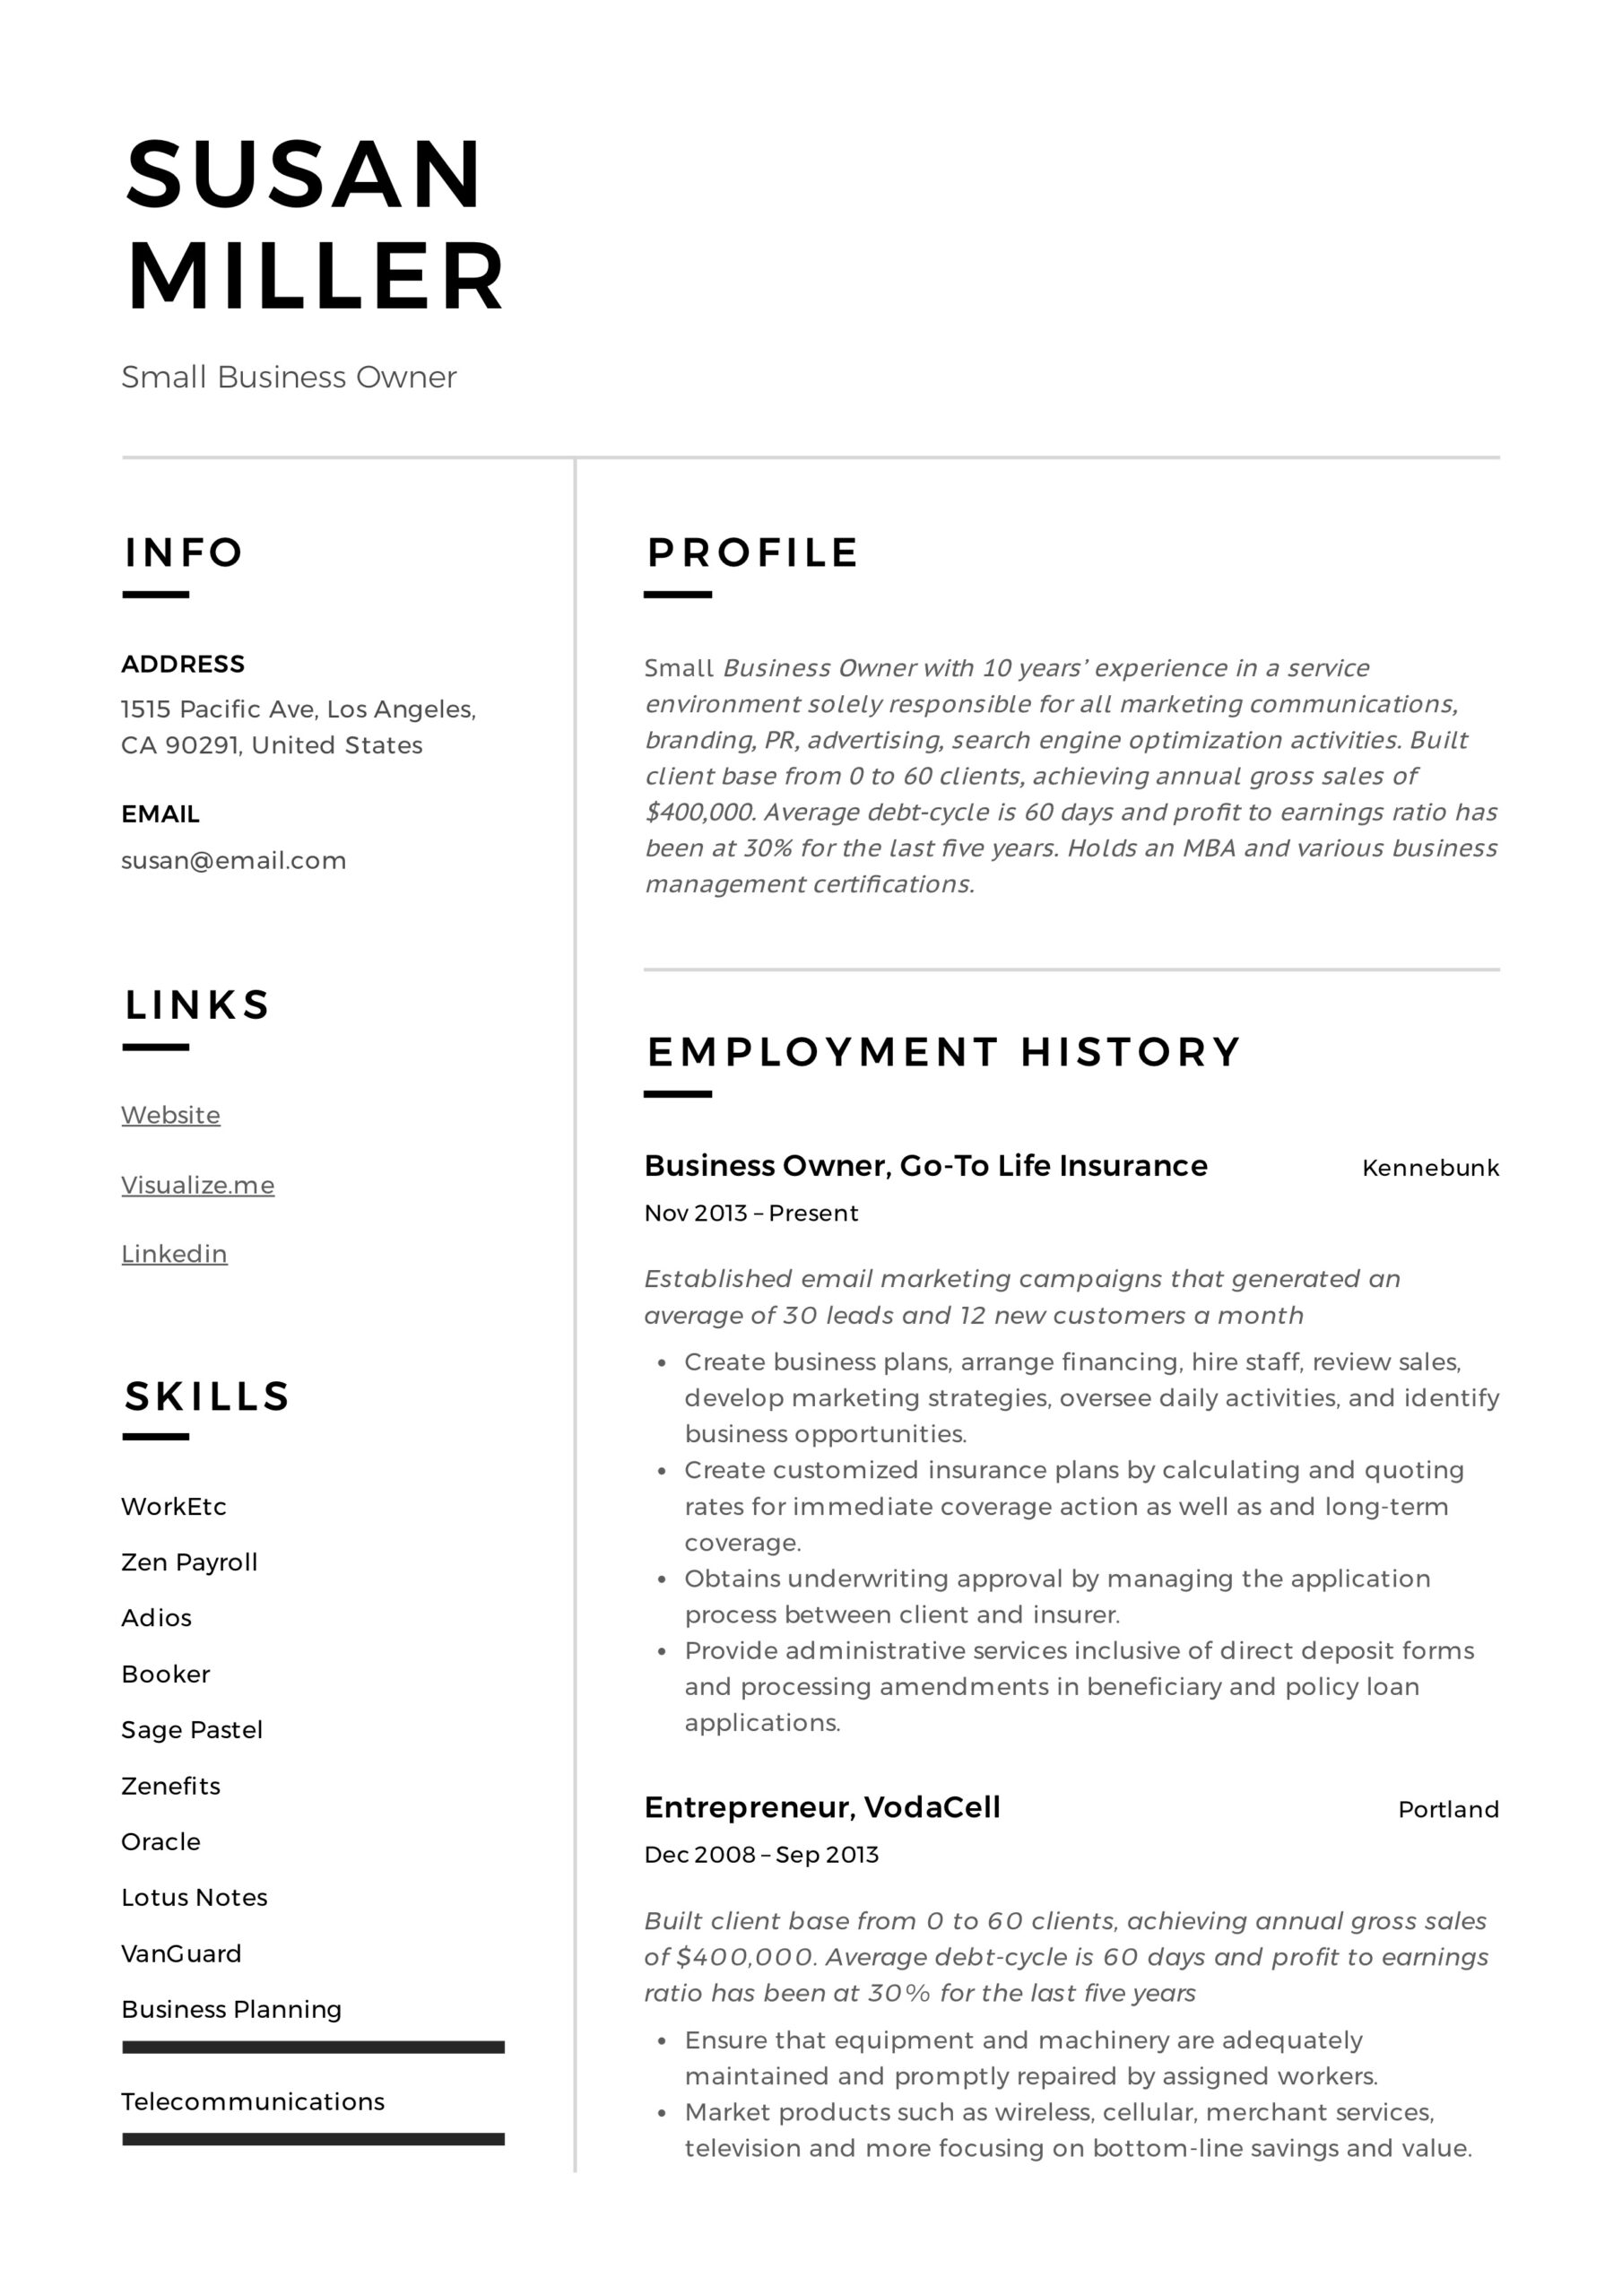 small business owner resume guide examples pdf entrepreneur example high school sports Resume Entrepreneur Resume Examples